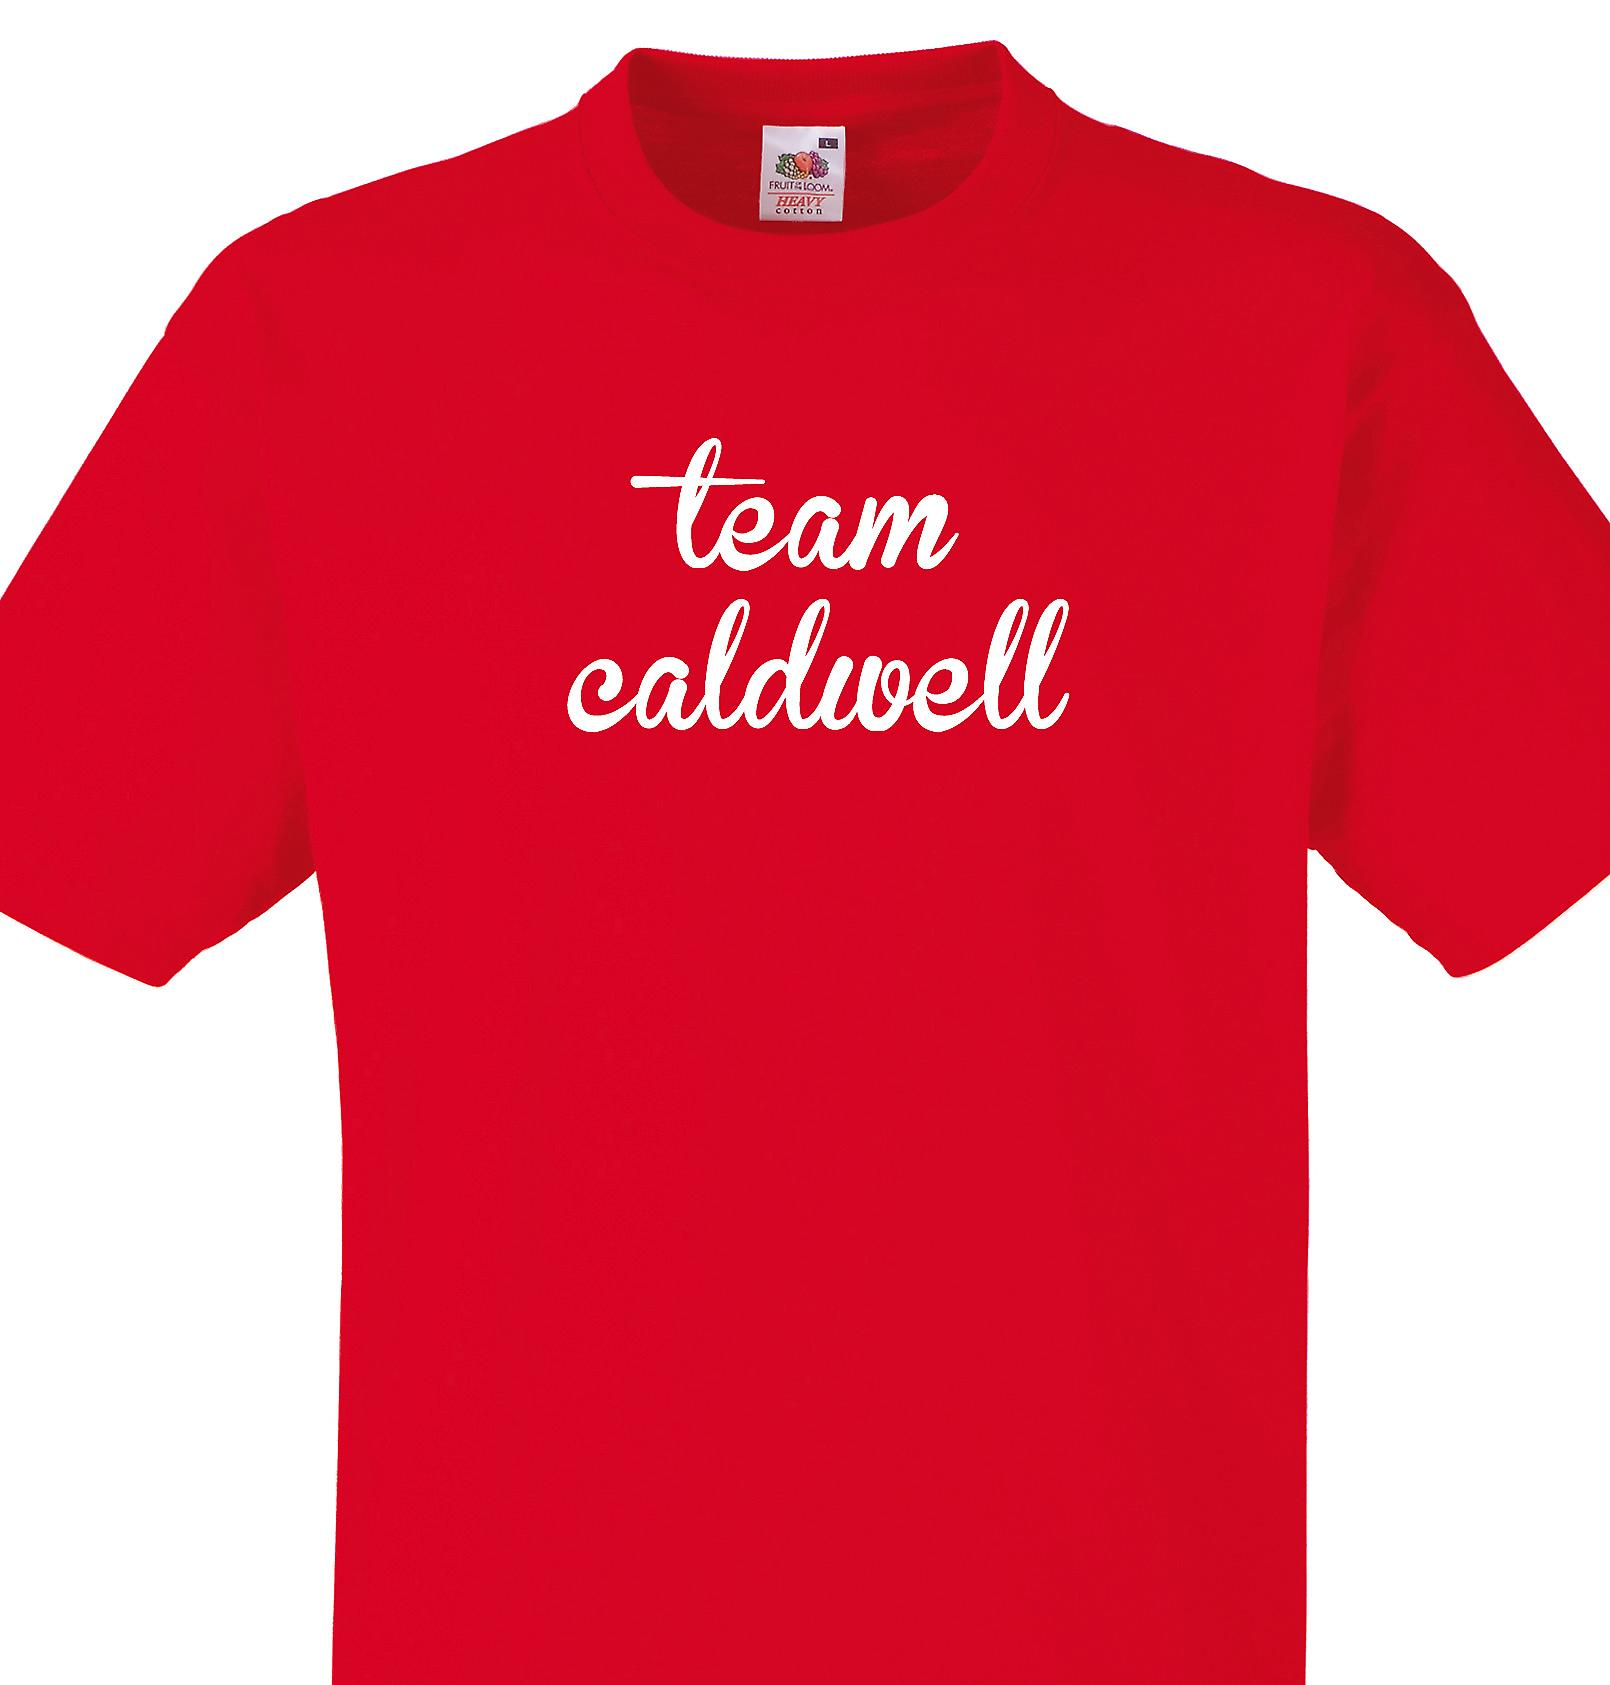 Team Caldwell Red T shirt